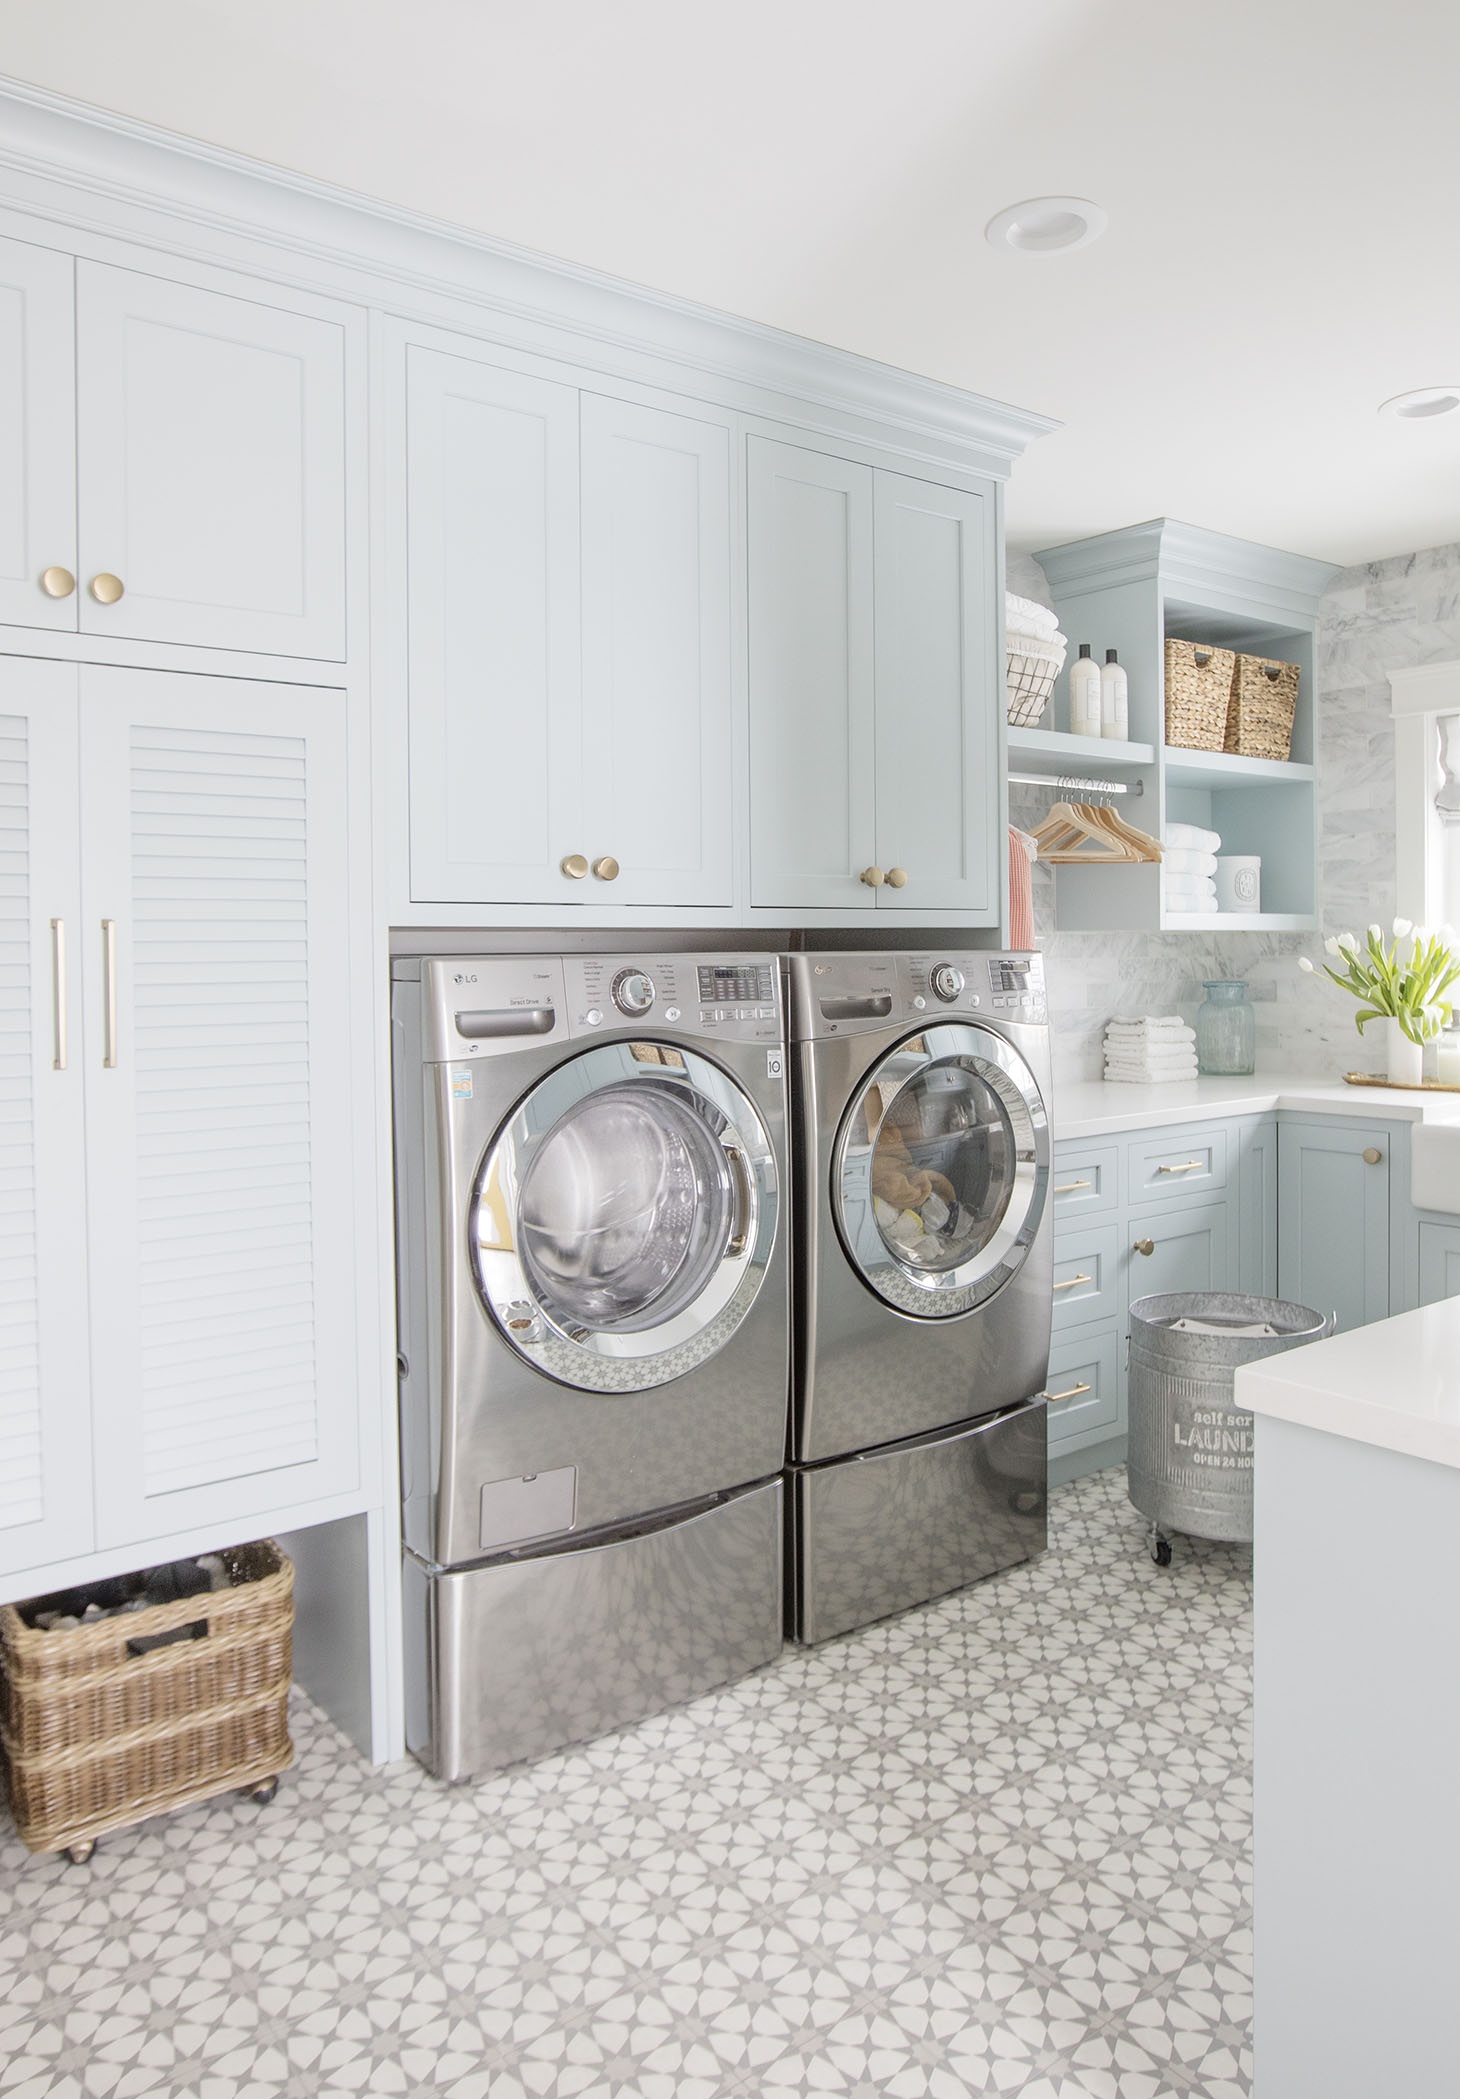 Beautiful laundry room design with light blue cabinets and stainless steel washer and dryer.